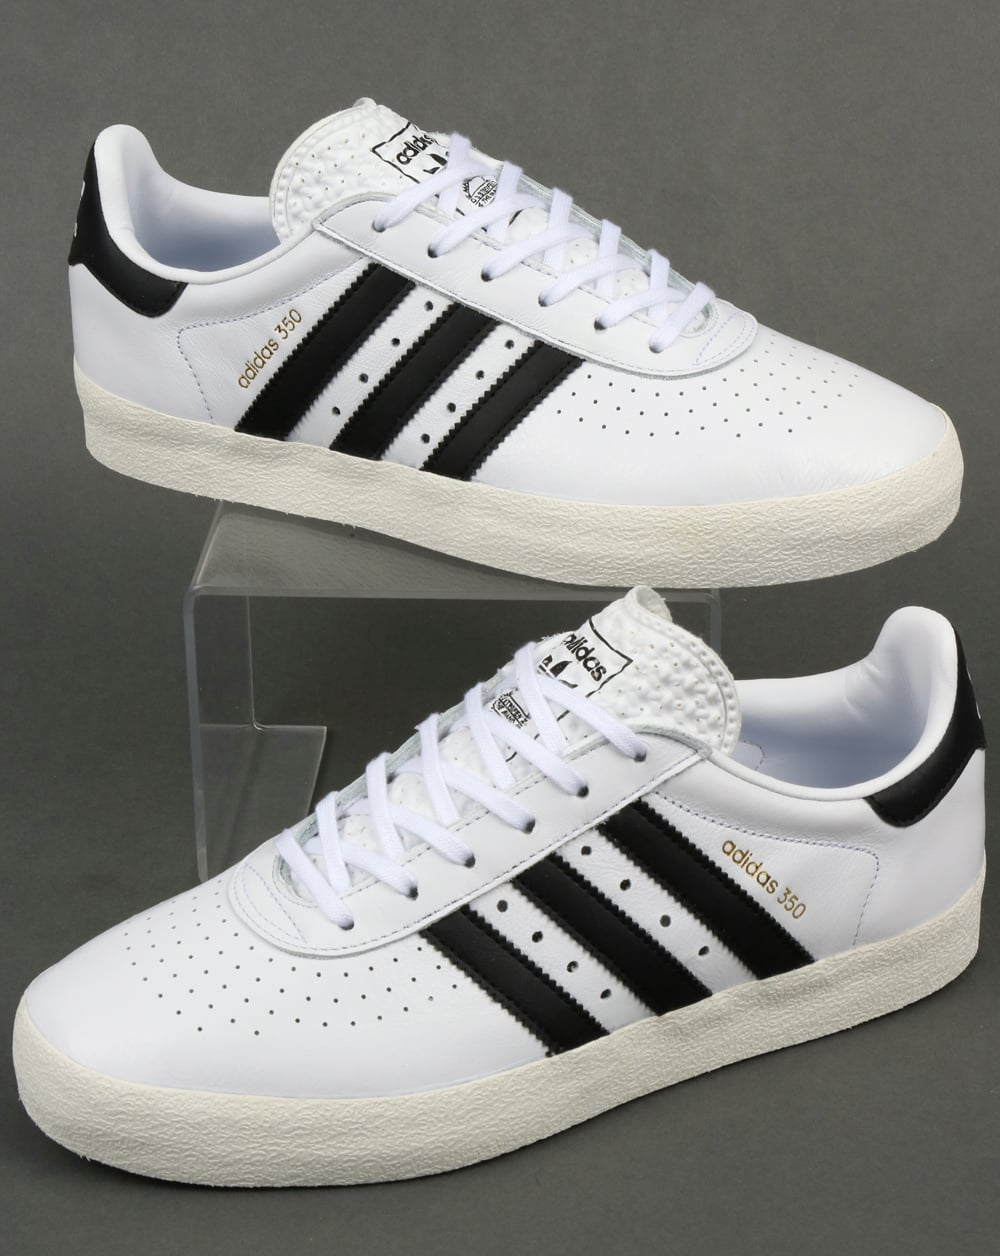 adidas Trainers Adidas 350 Trainers White/Black/Off White ...